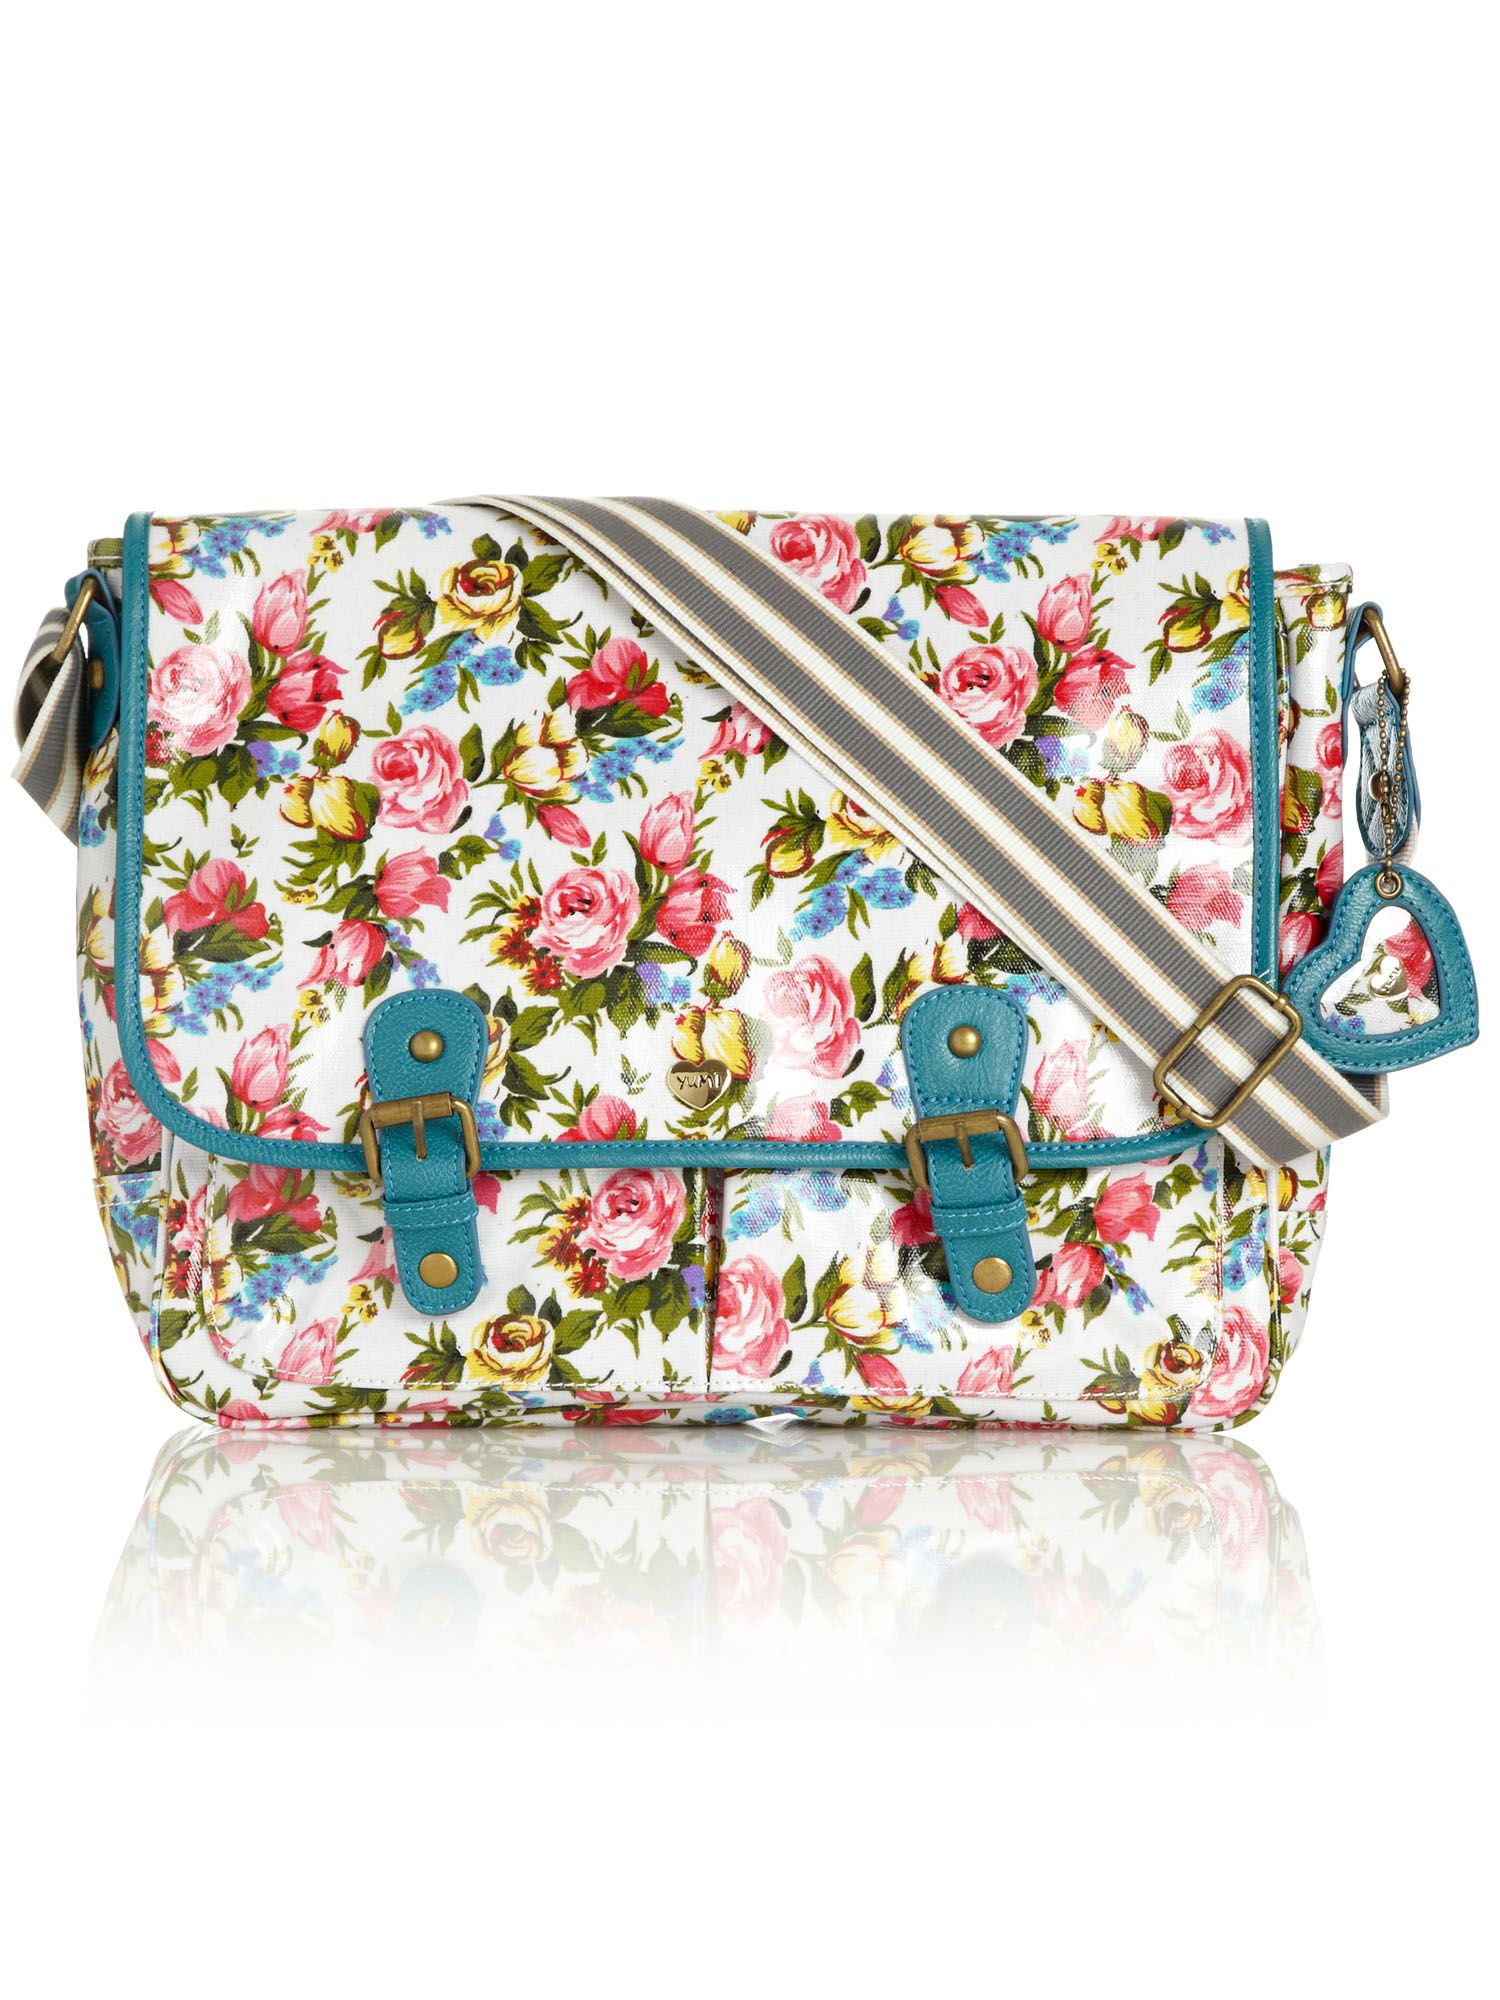 Yumi large floral satchel bag